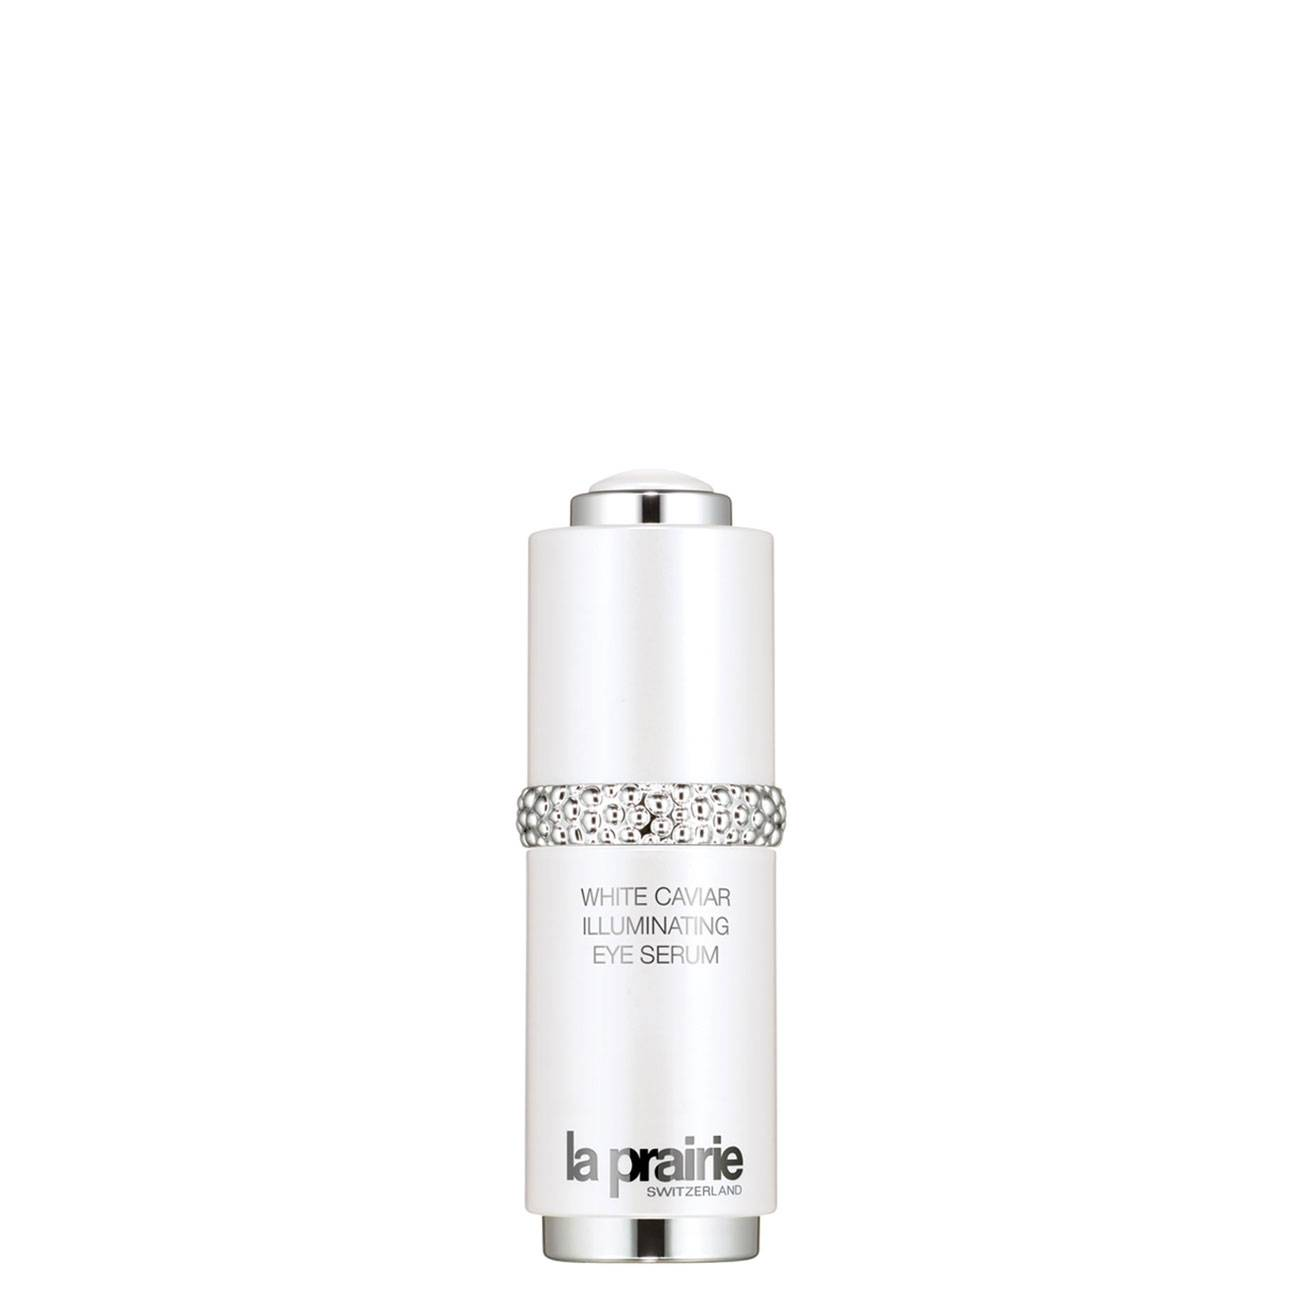 WHITE CAVIAR ILLUMINATING EYE SERUM 15 ML